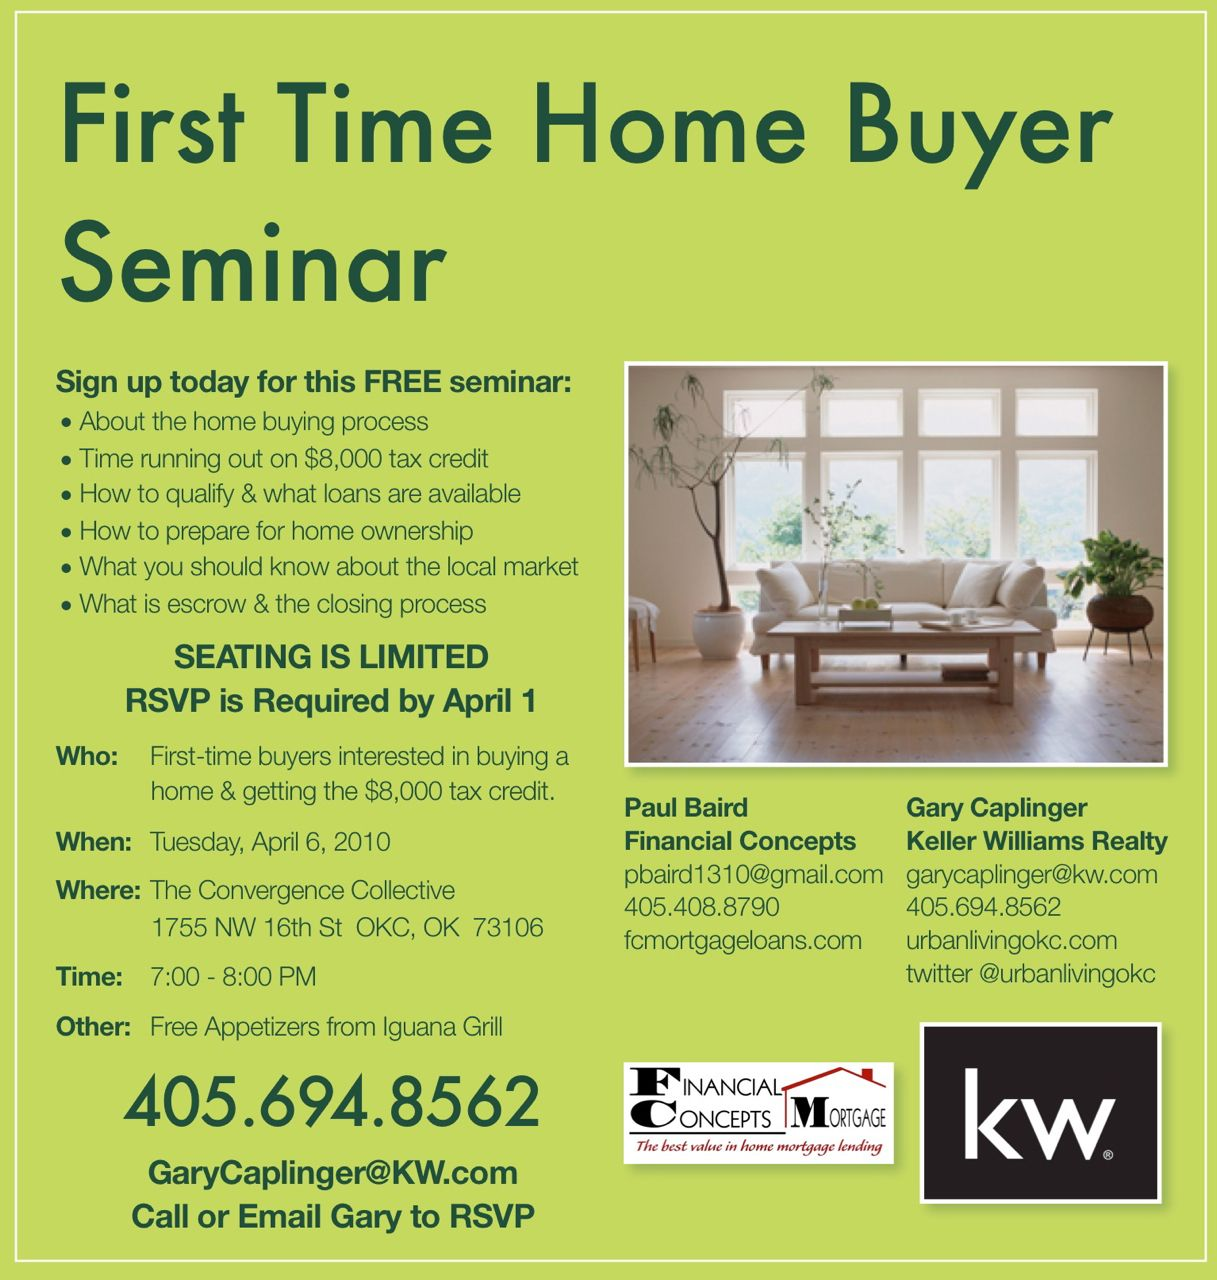 First Time Home Buyer Seminar Flyer Yahoo Search Results